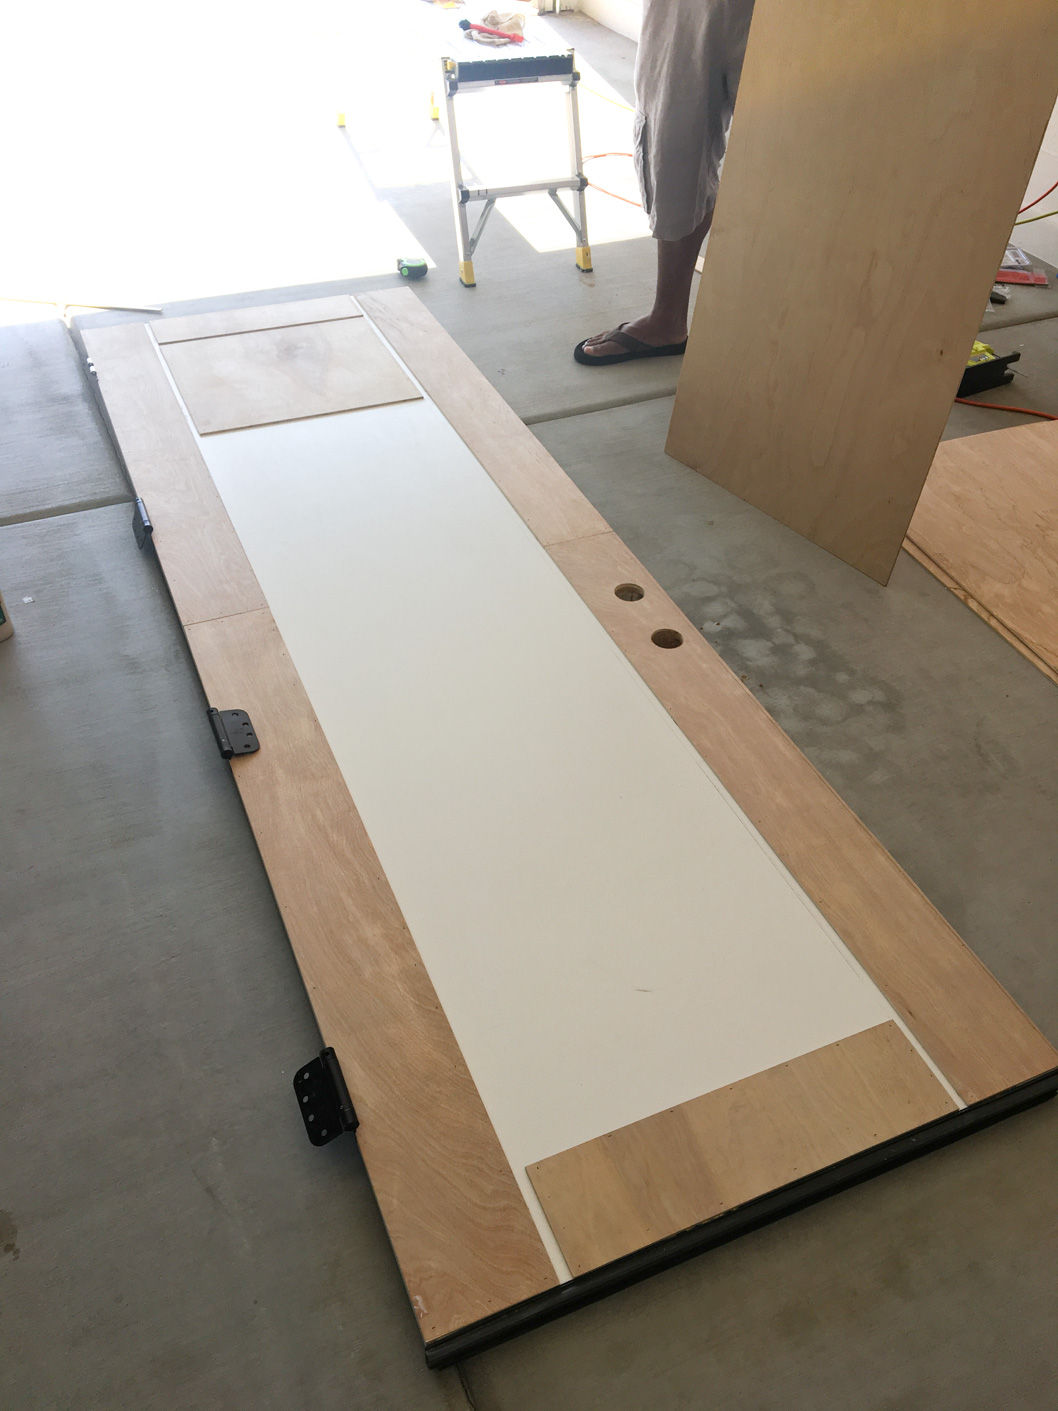 Old, white garage door with 2 vertical wood panels and 3 horizontal wood panels.